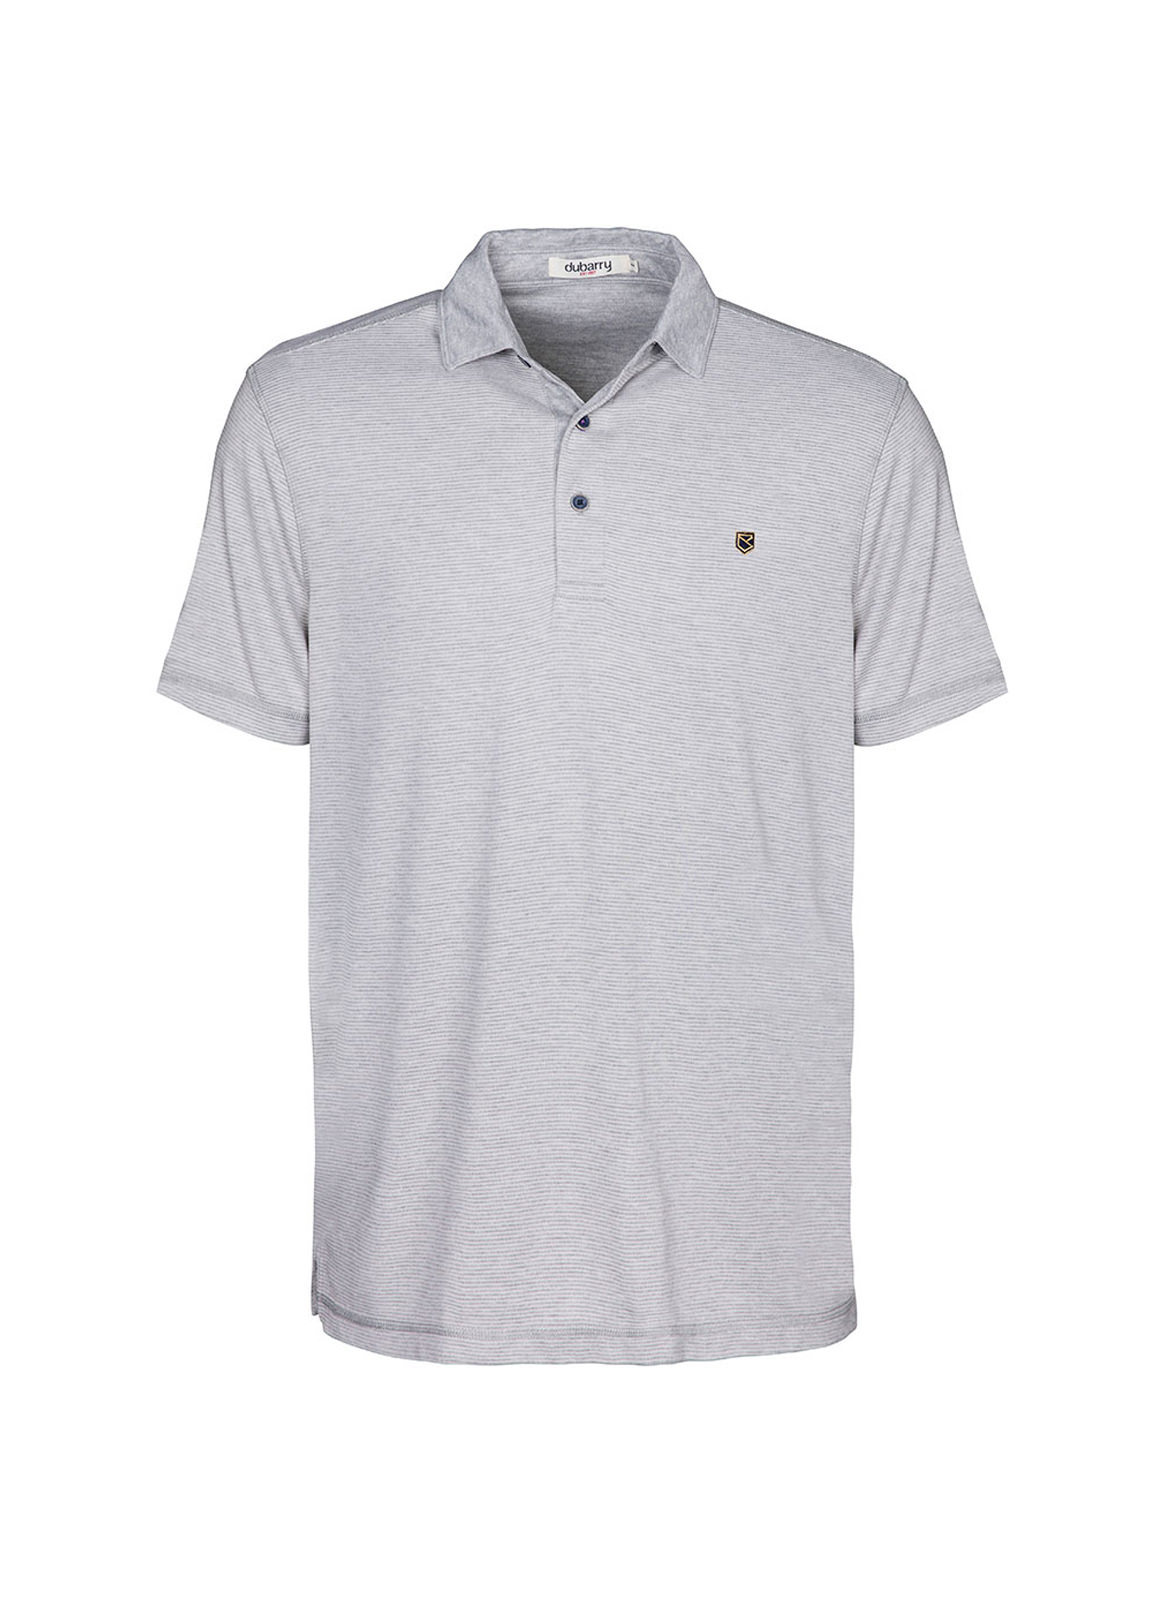 Dubarry_ Drumcliff Polo Shirt - Shale_Image_2